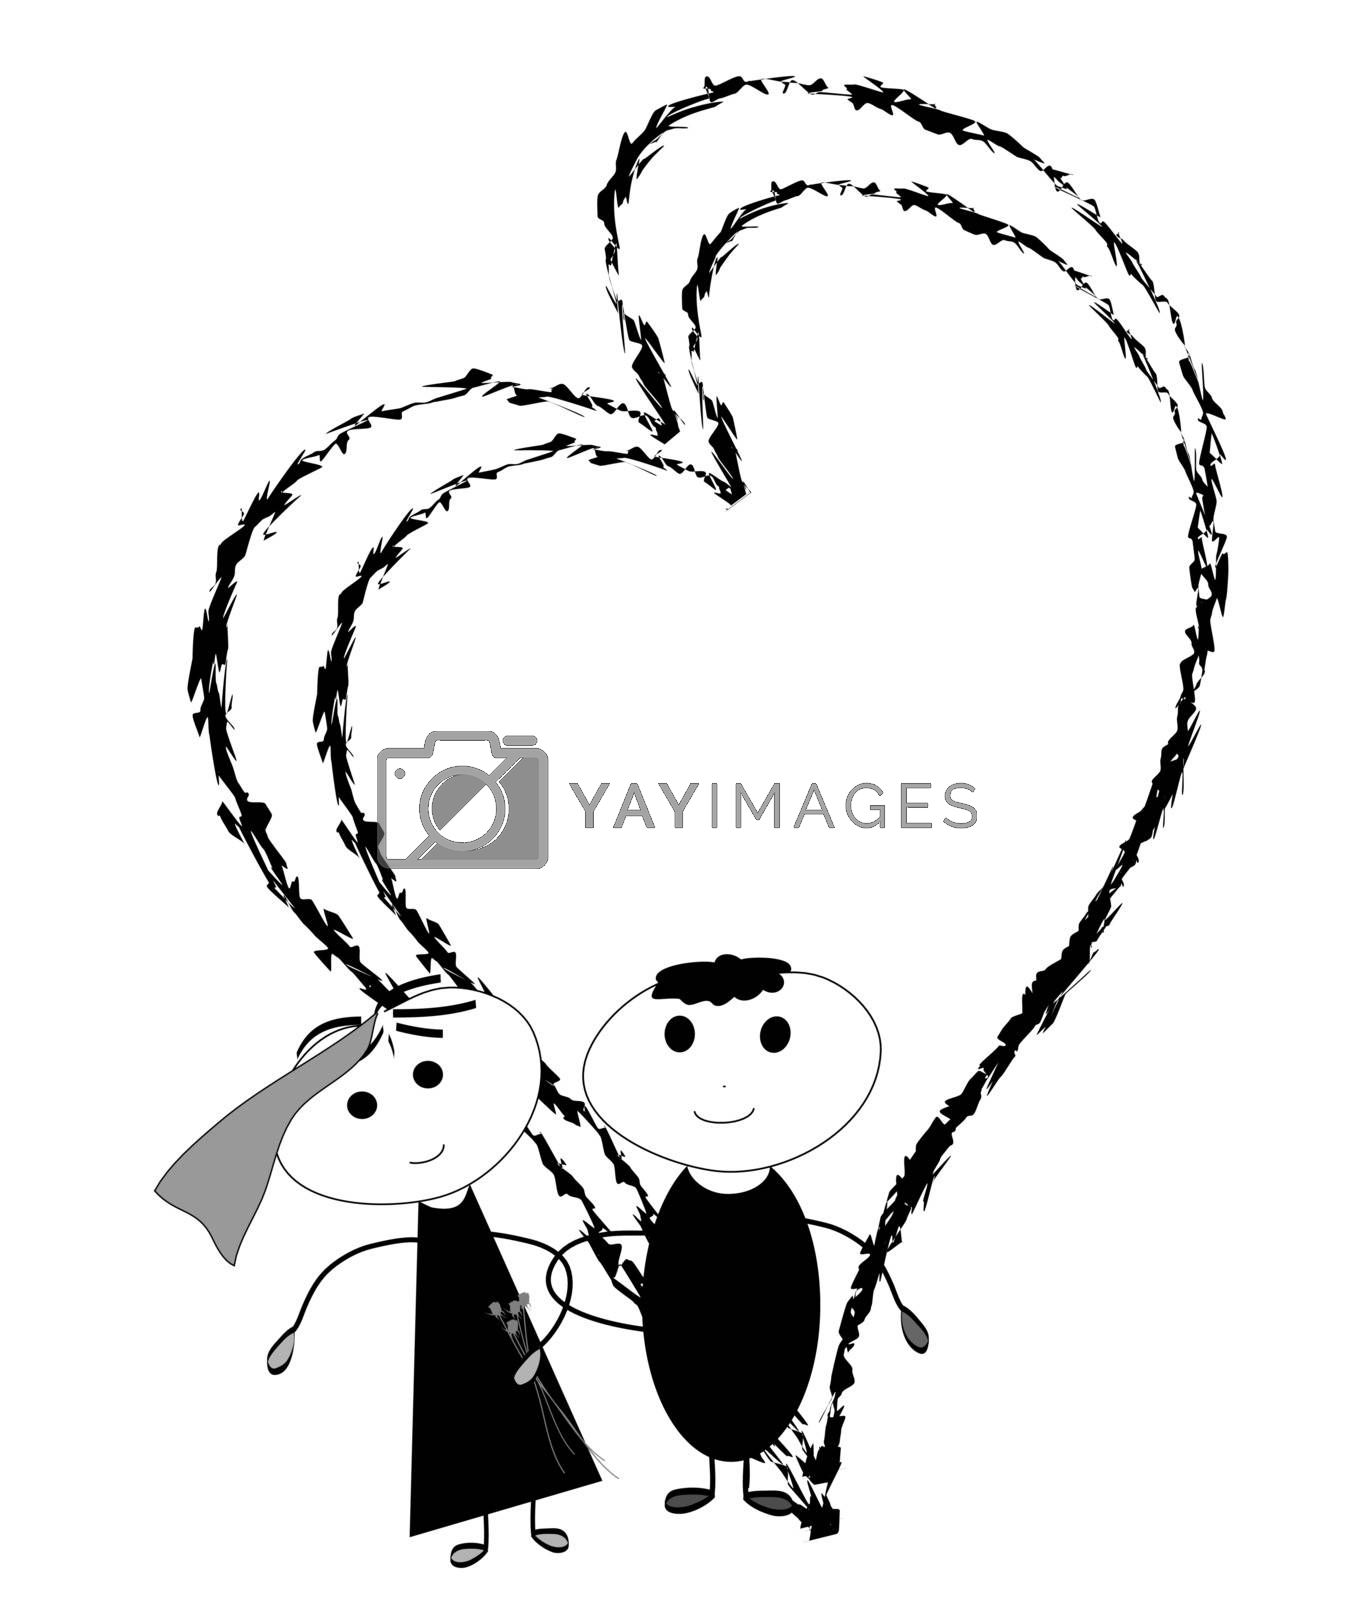 Couple in their wedding with flowers and hearts